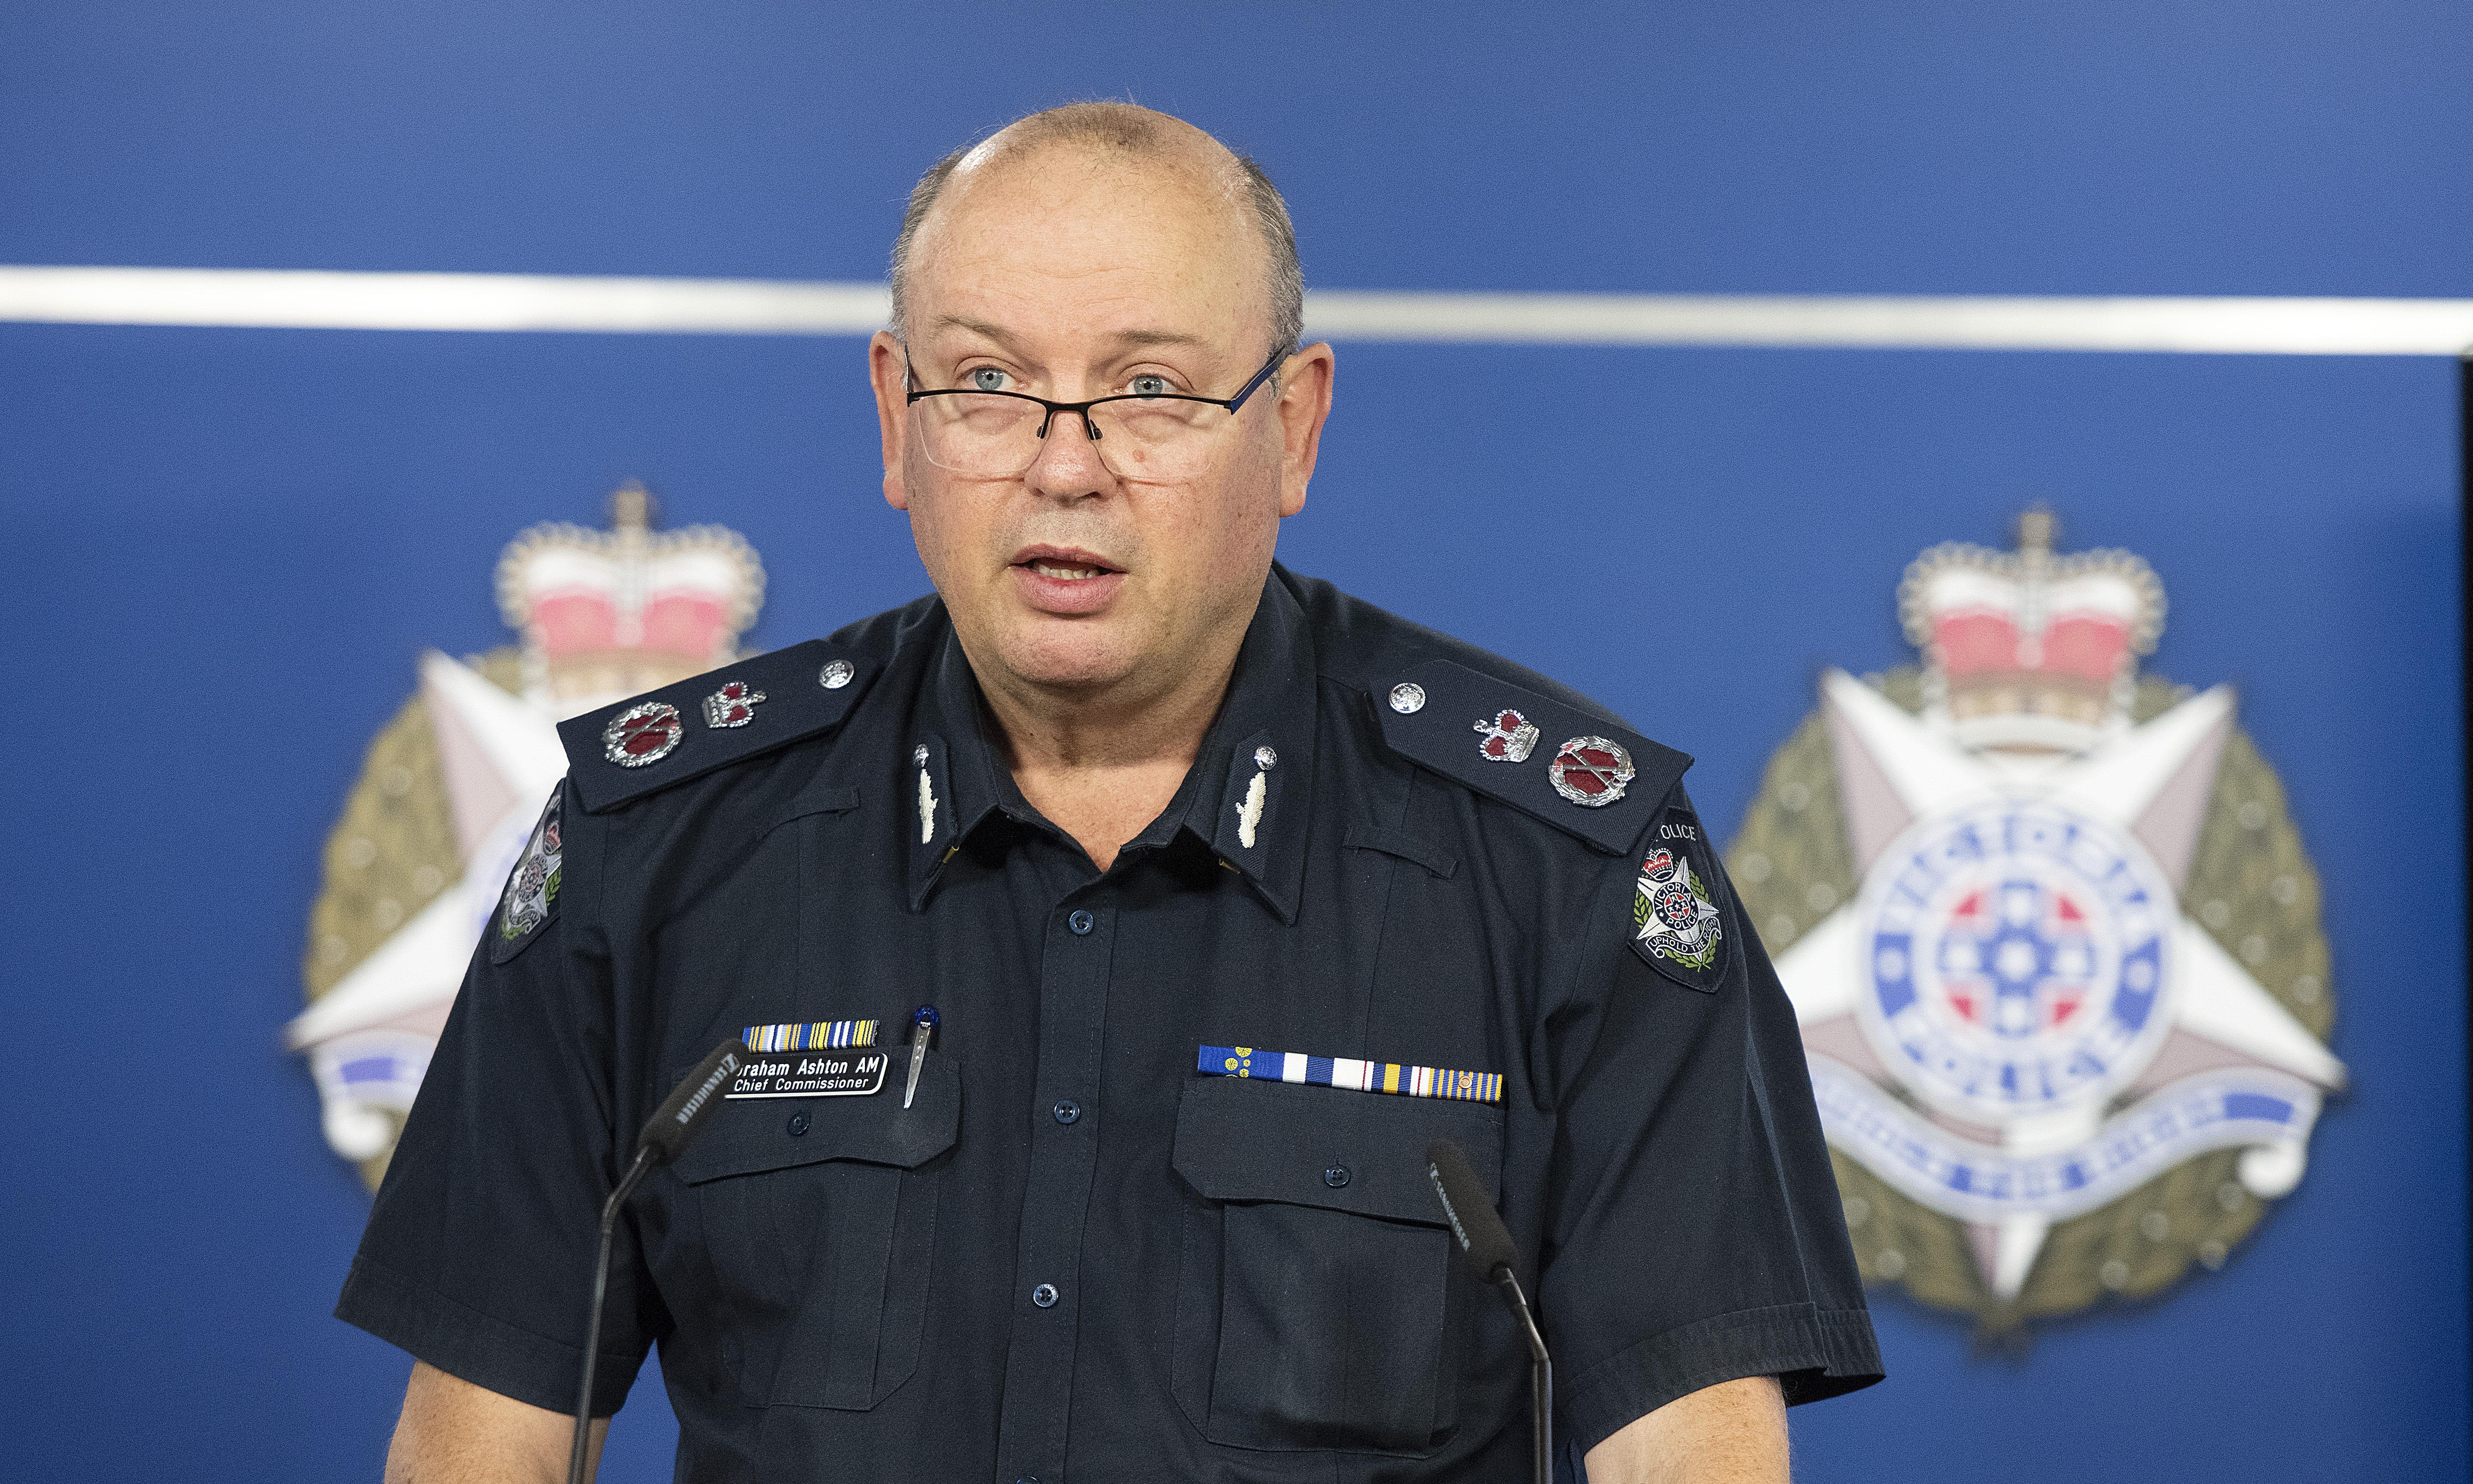 Victoria police say sorry to LGBTIQ+ community for causing 'unacceptable harm'